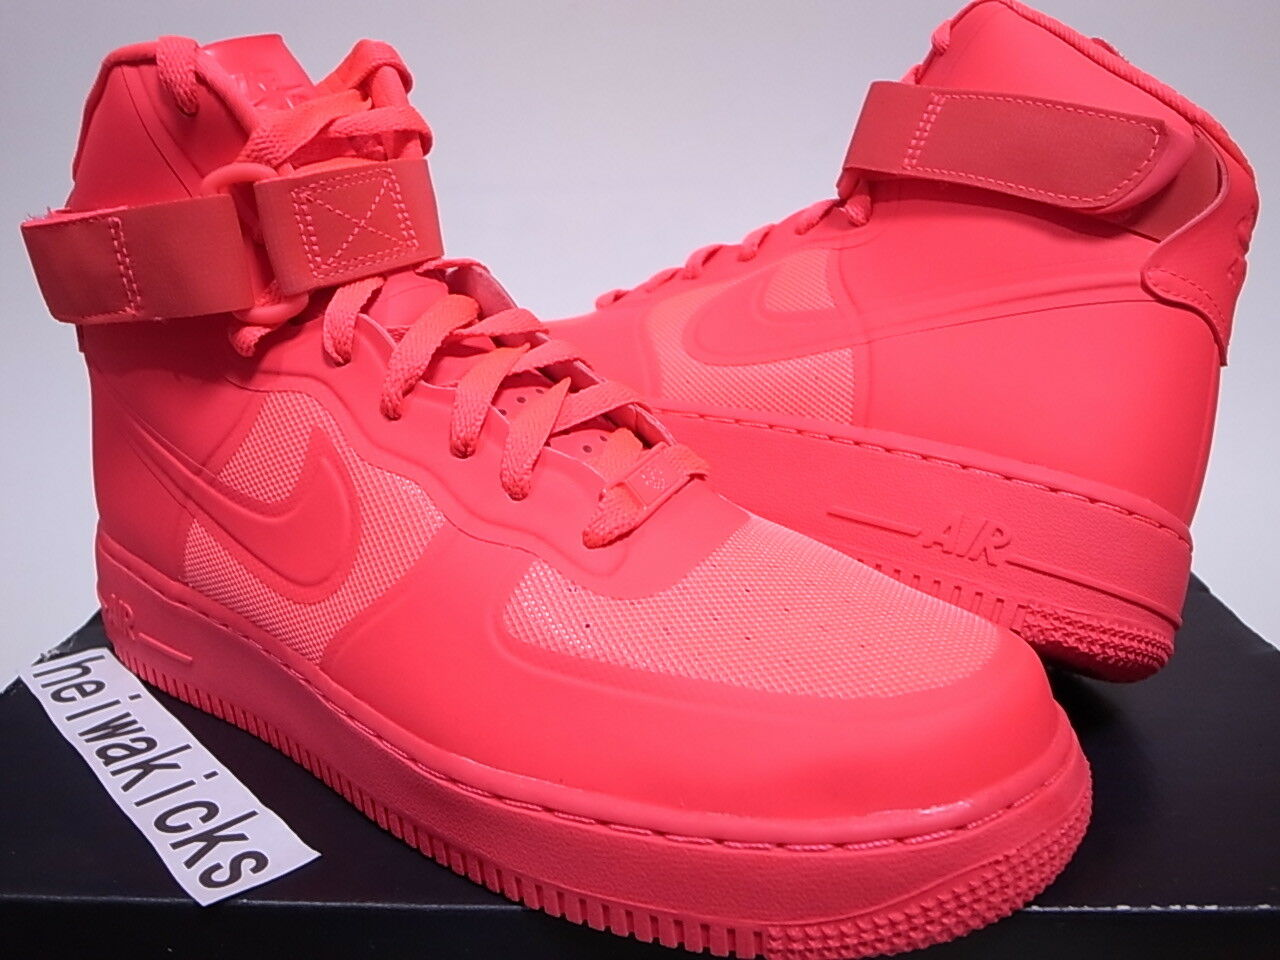 2011 NIKE AIR FORCE 1 HI HYP PRM SOLAR RED SOLAR RED 454433-600 size 8.5